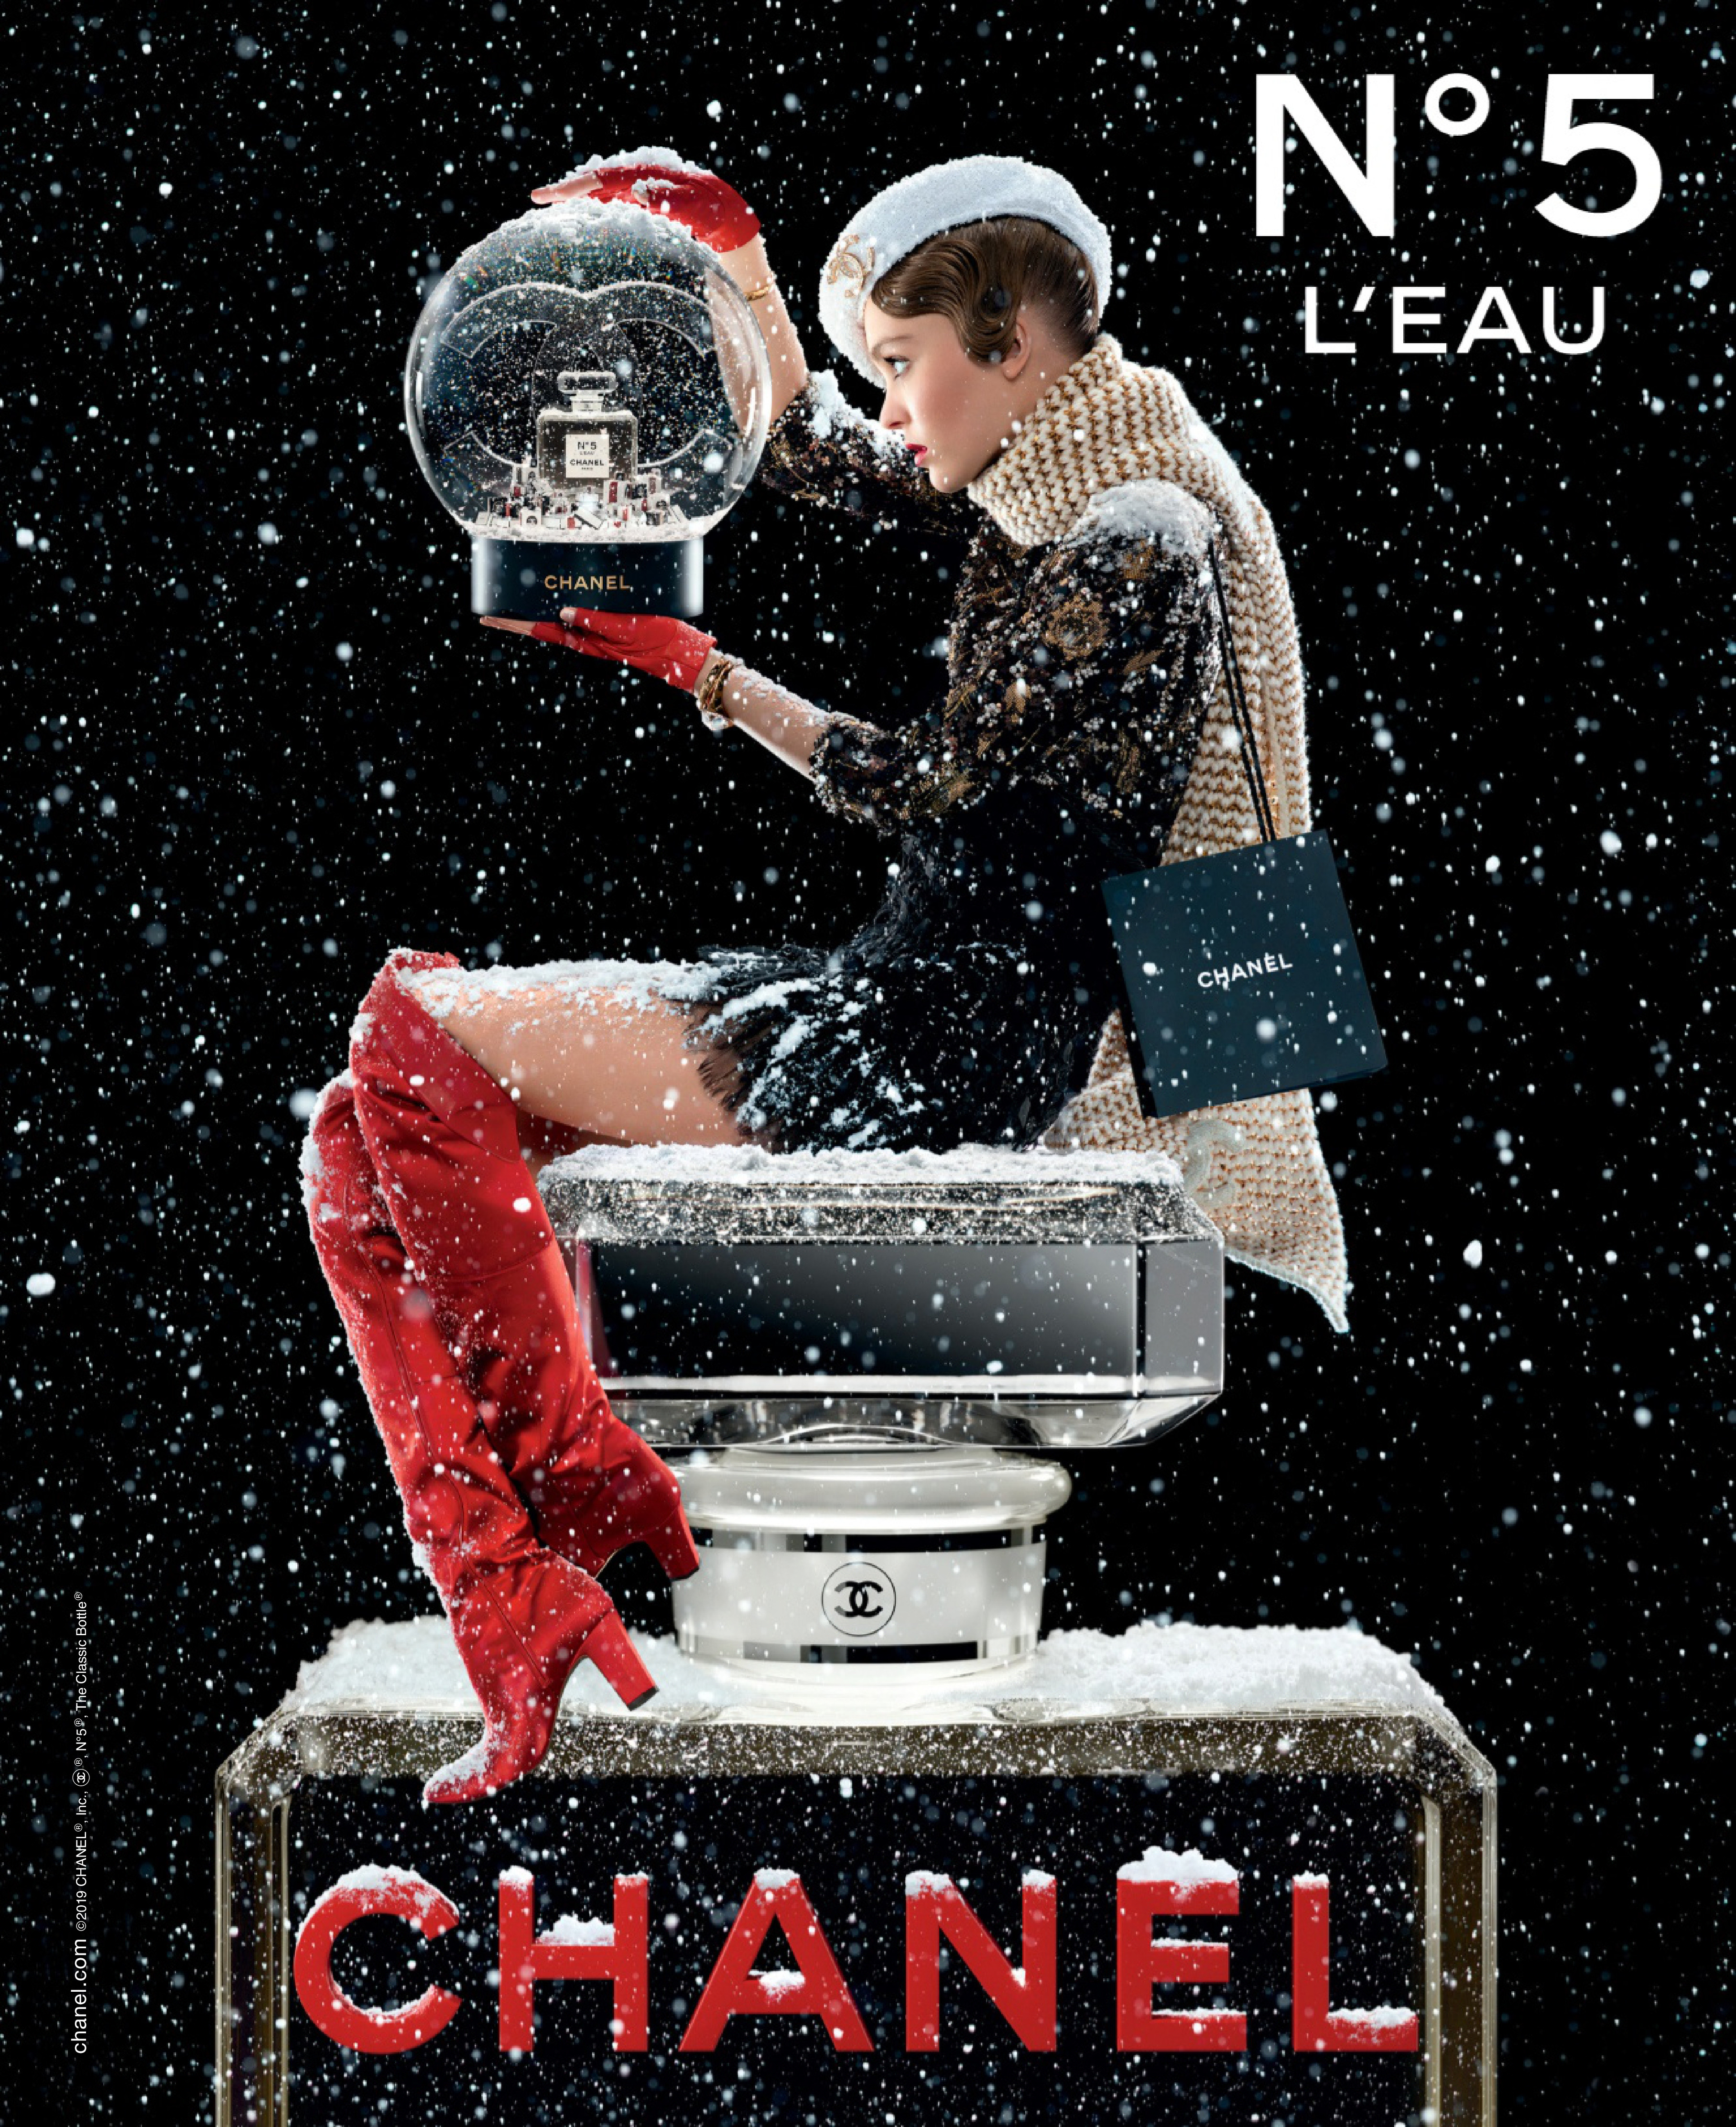 Chanel 'No. 5 L'Eau' Fragrance Holiday 2019 Campaign With Lily-Rose Depp by Jean-Paul Goude